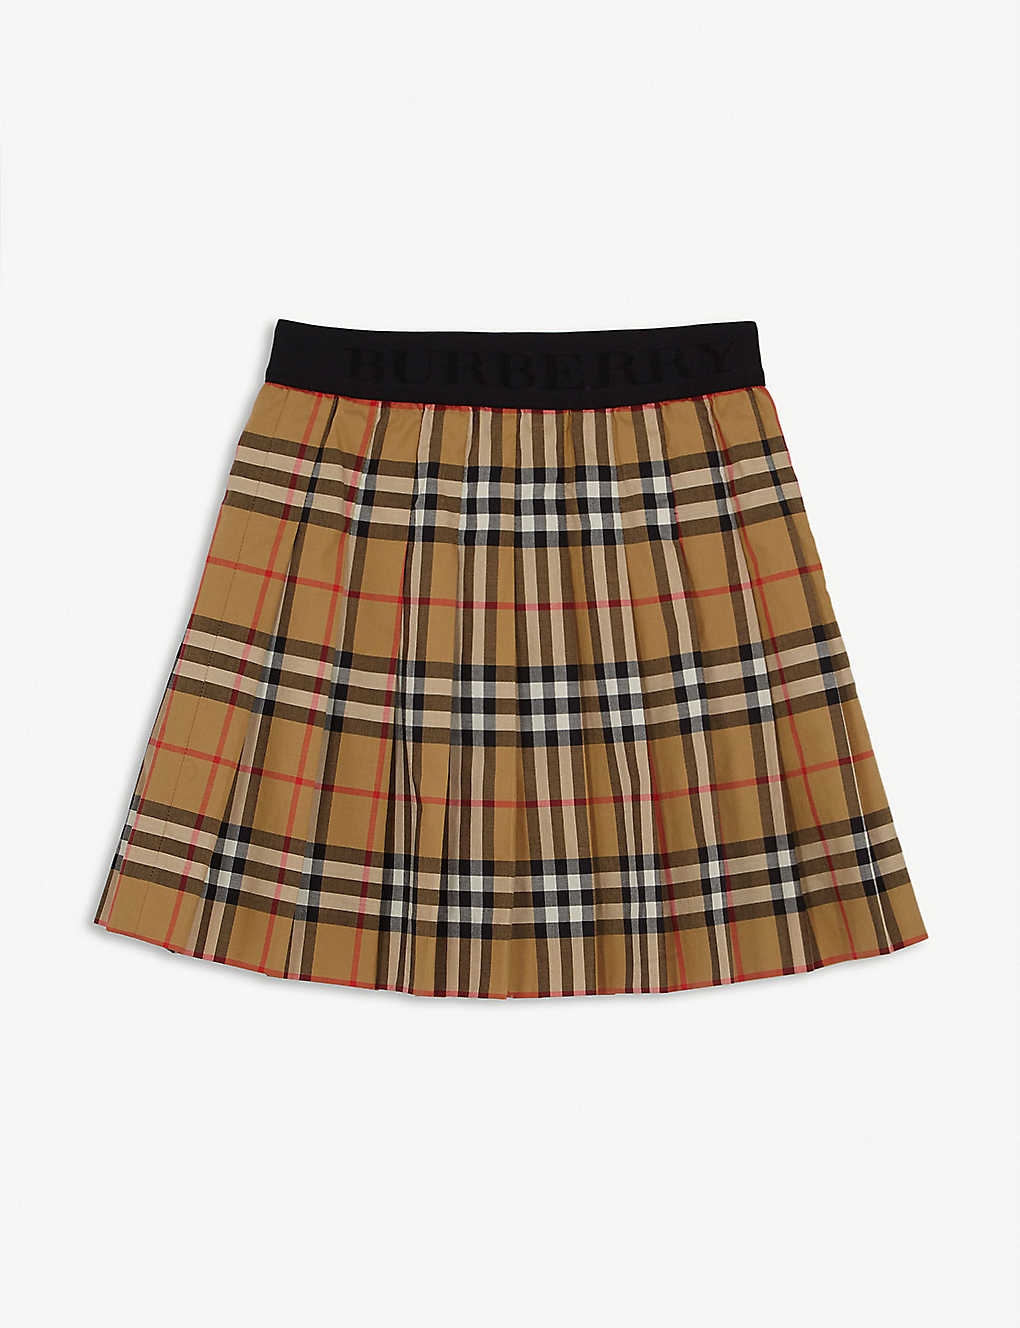 Burberry Tops Branded waistband cotton check skirt 6-8 years